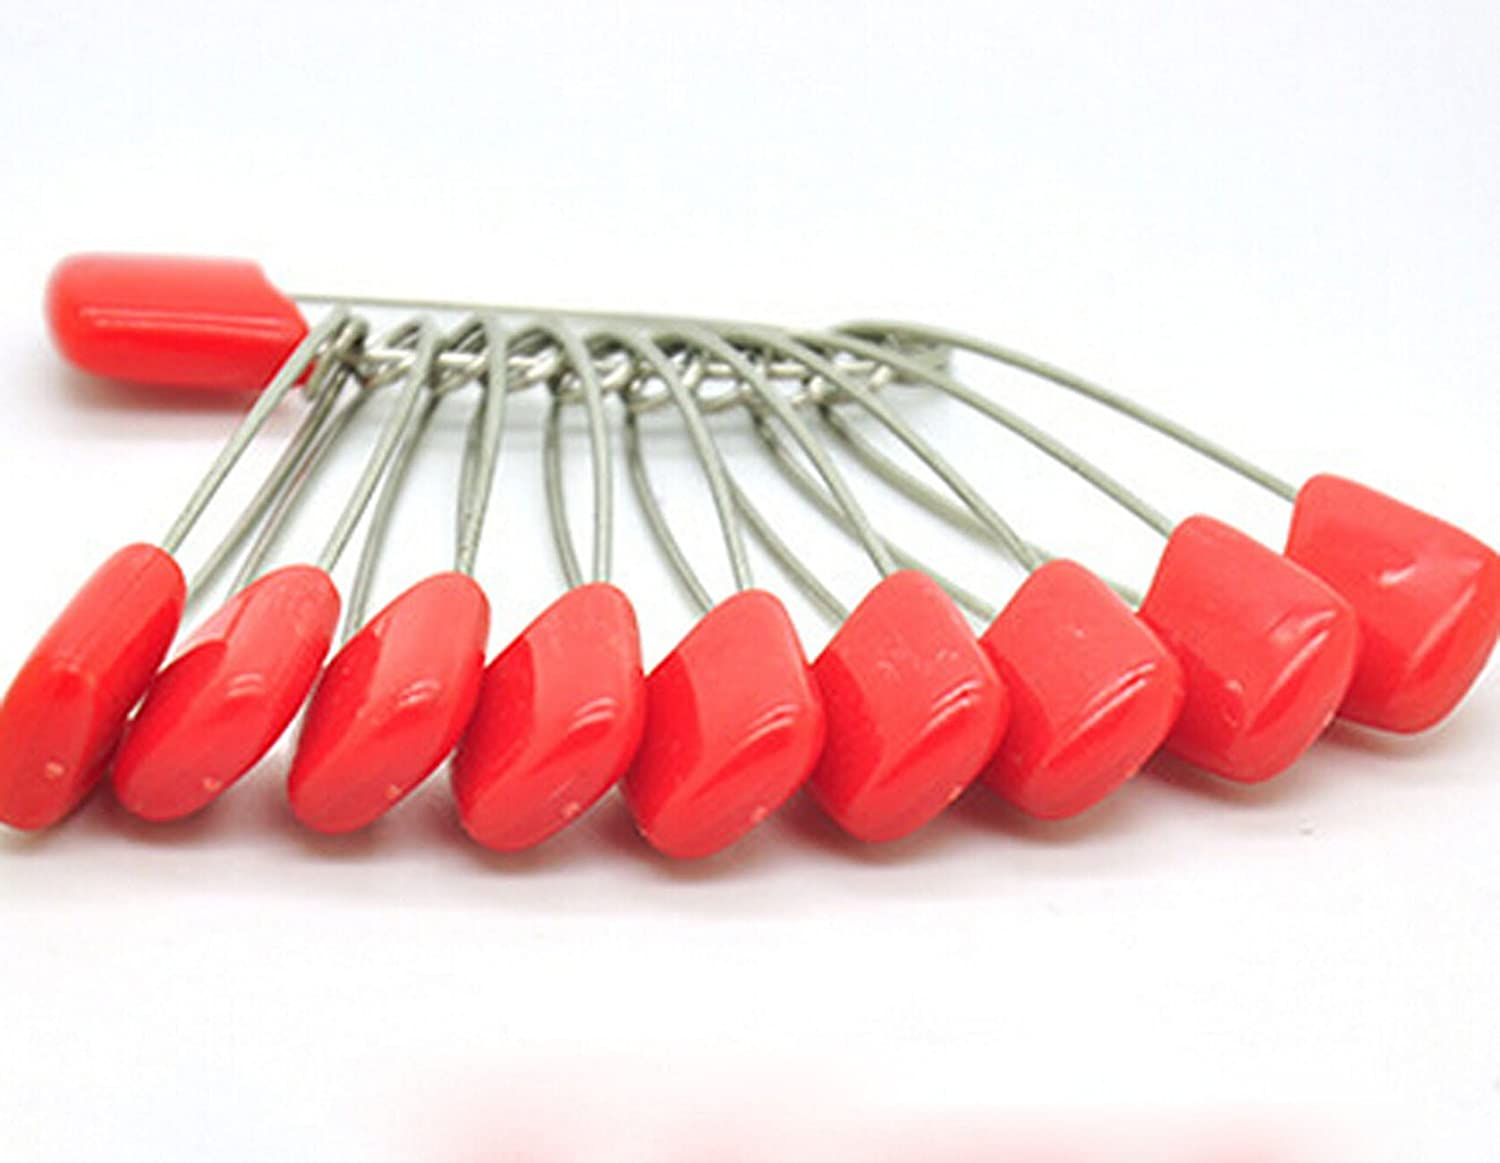 KingWinX Baby Safety Diaper Pins Pack of 20 Pcs Small Size Red